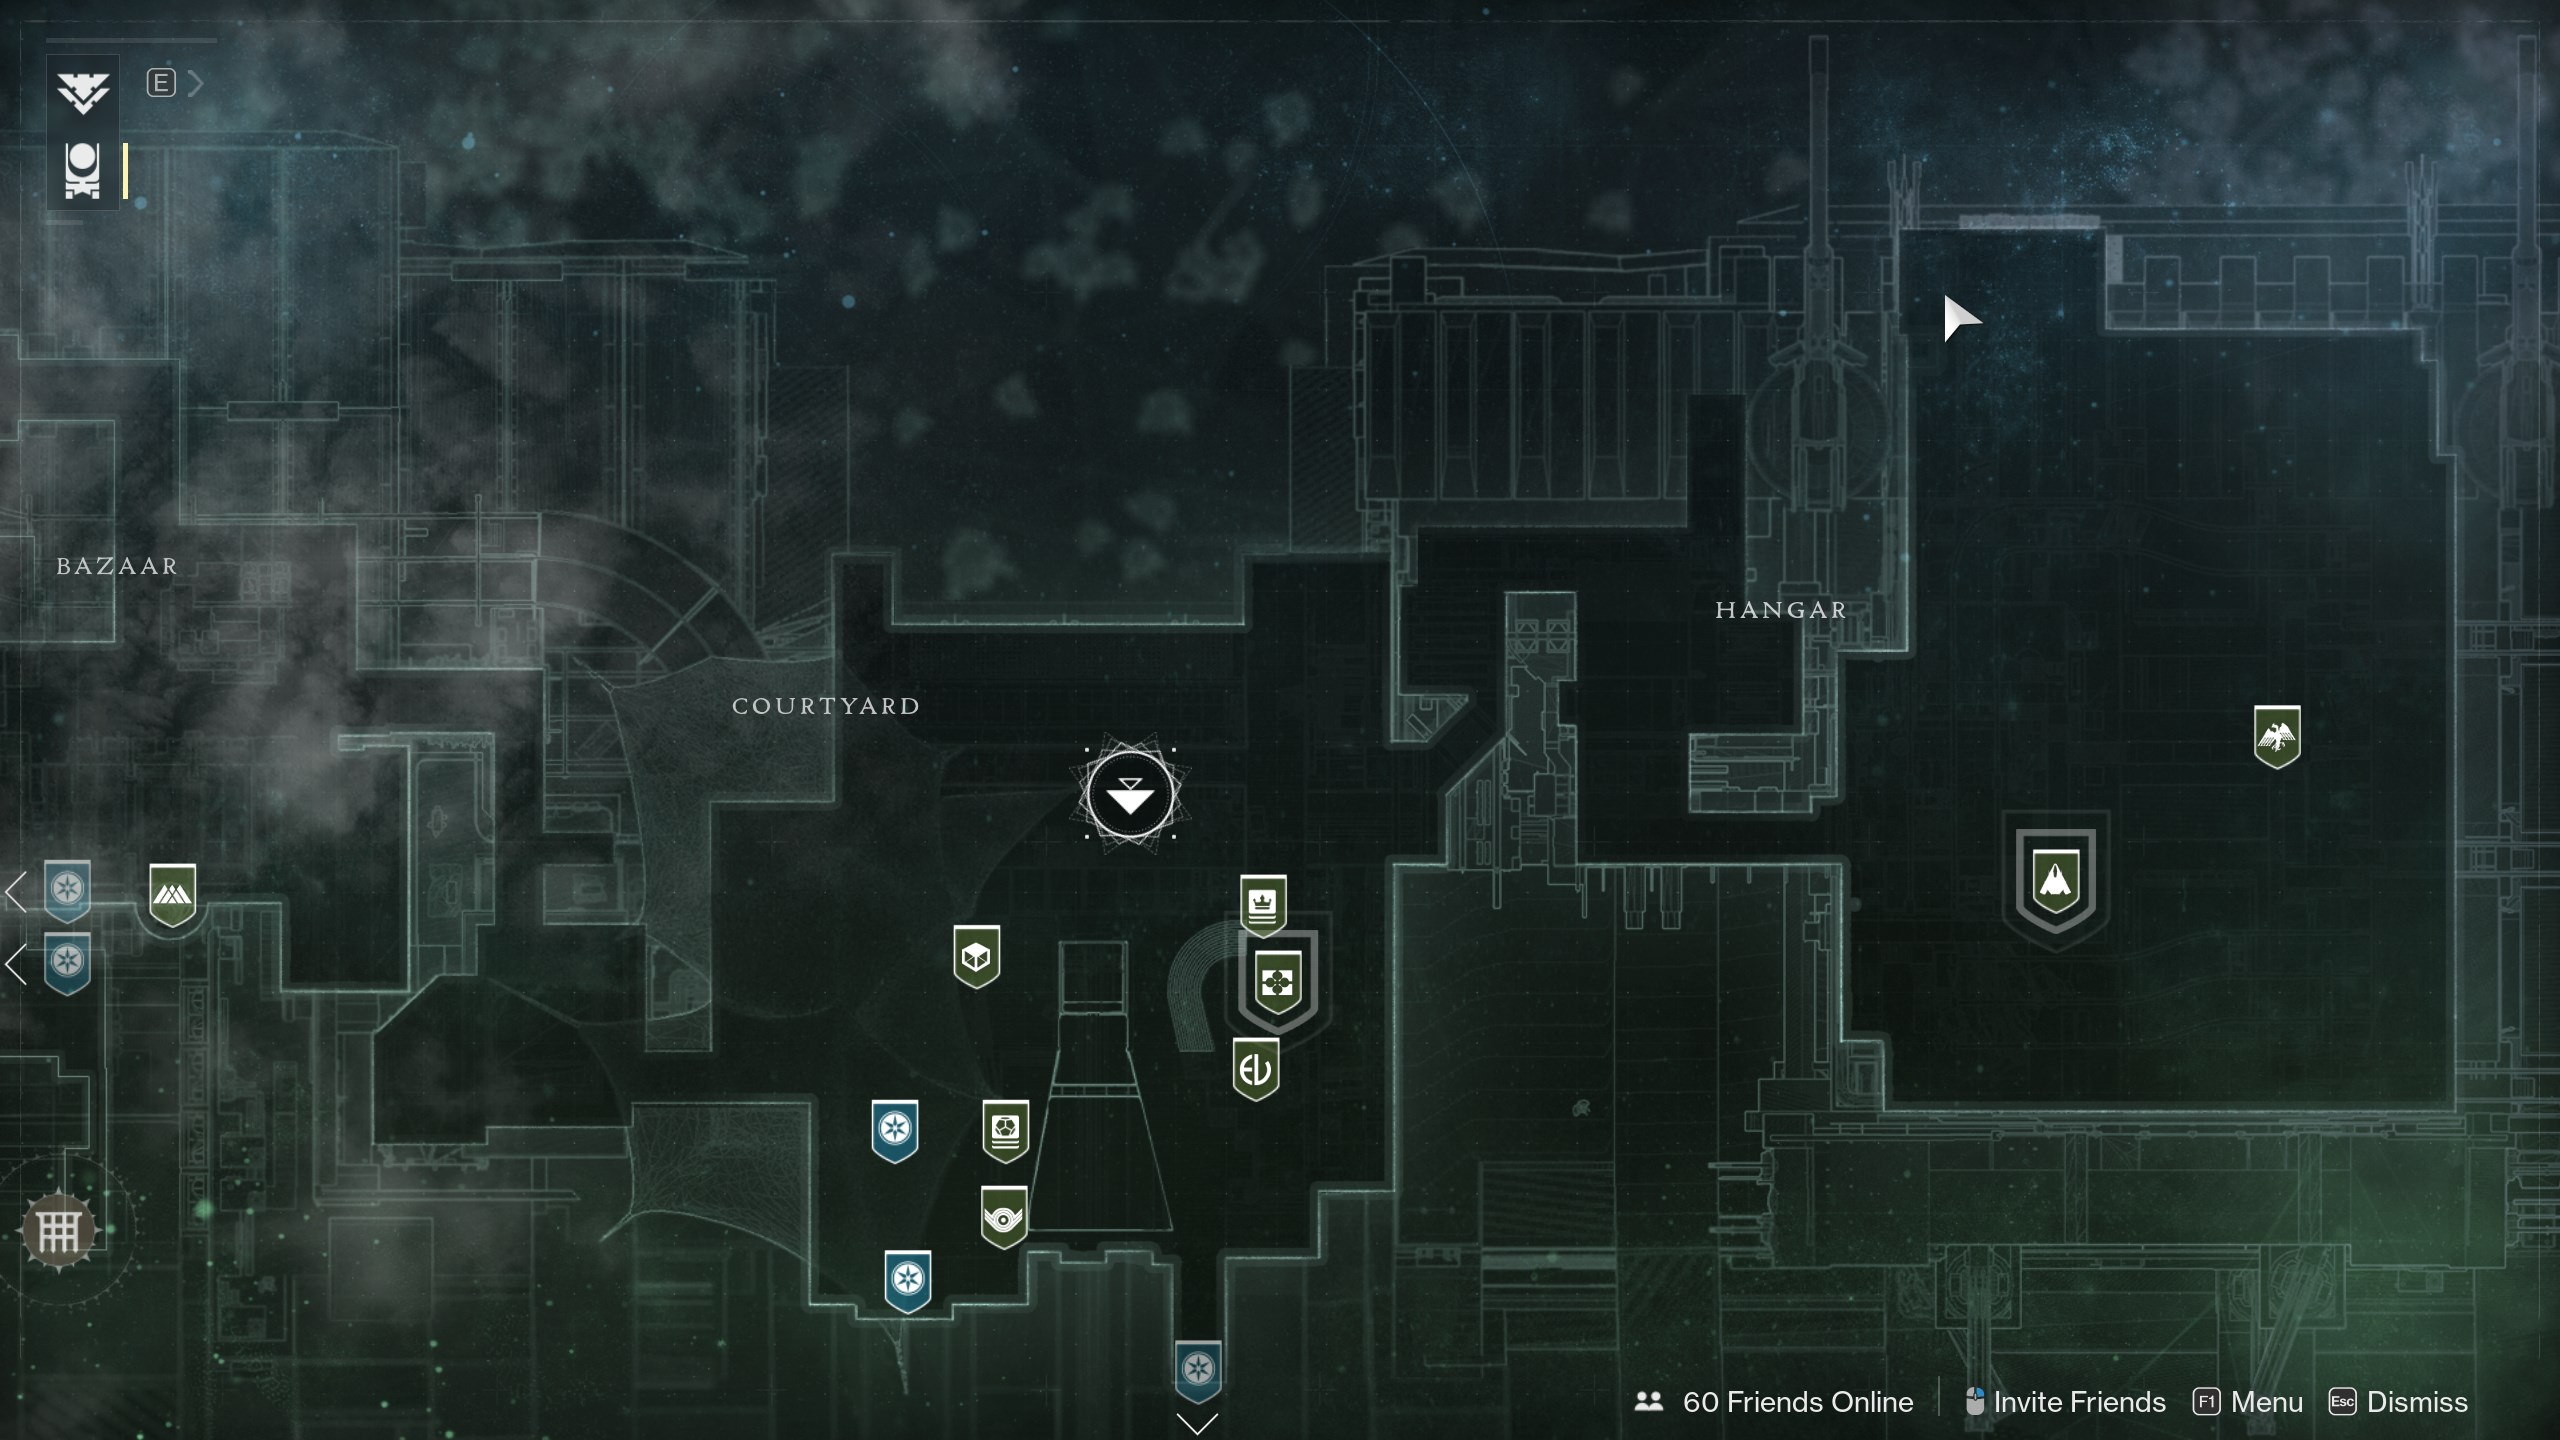 Xur's location and wares for Feb 12, 2021 - Destiny 2